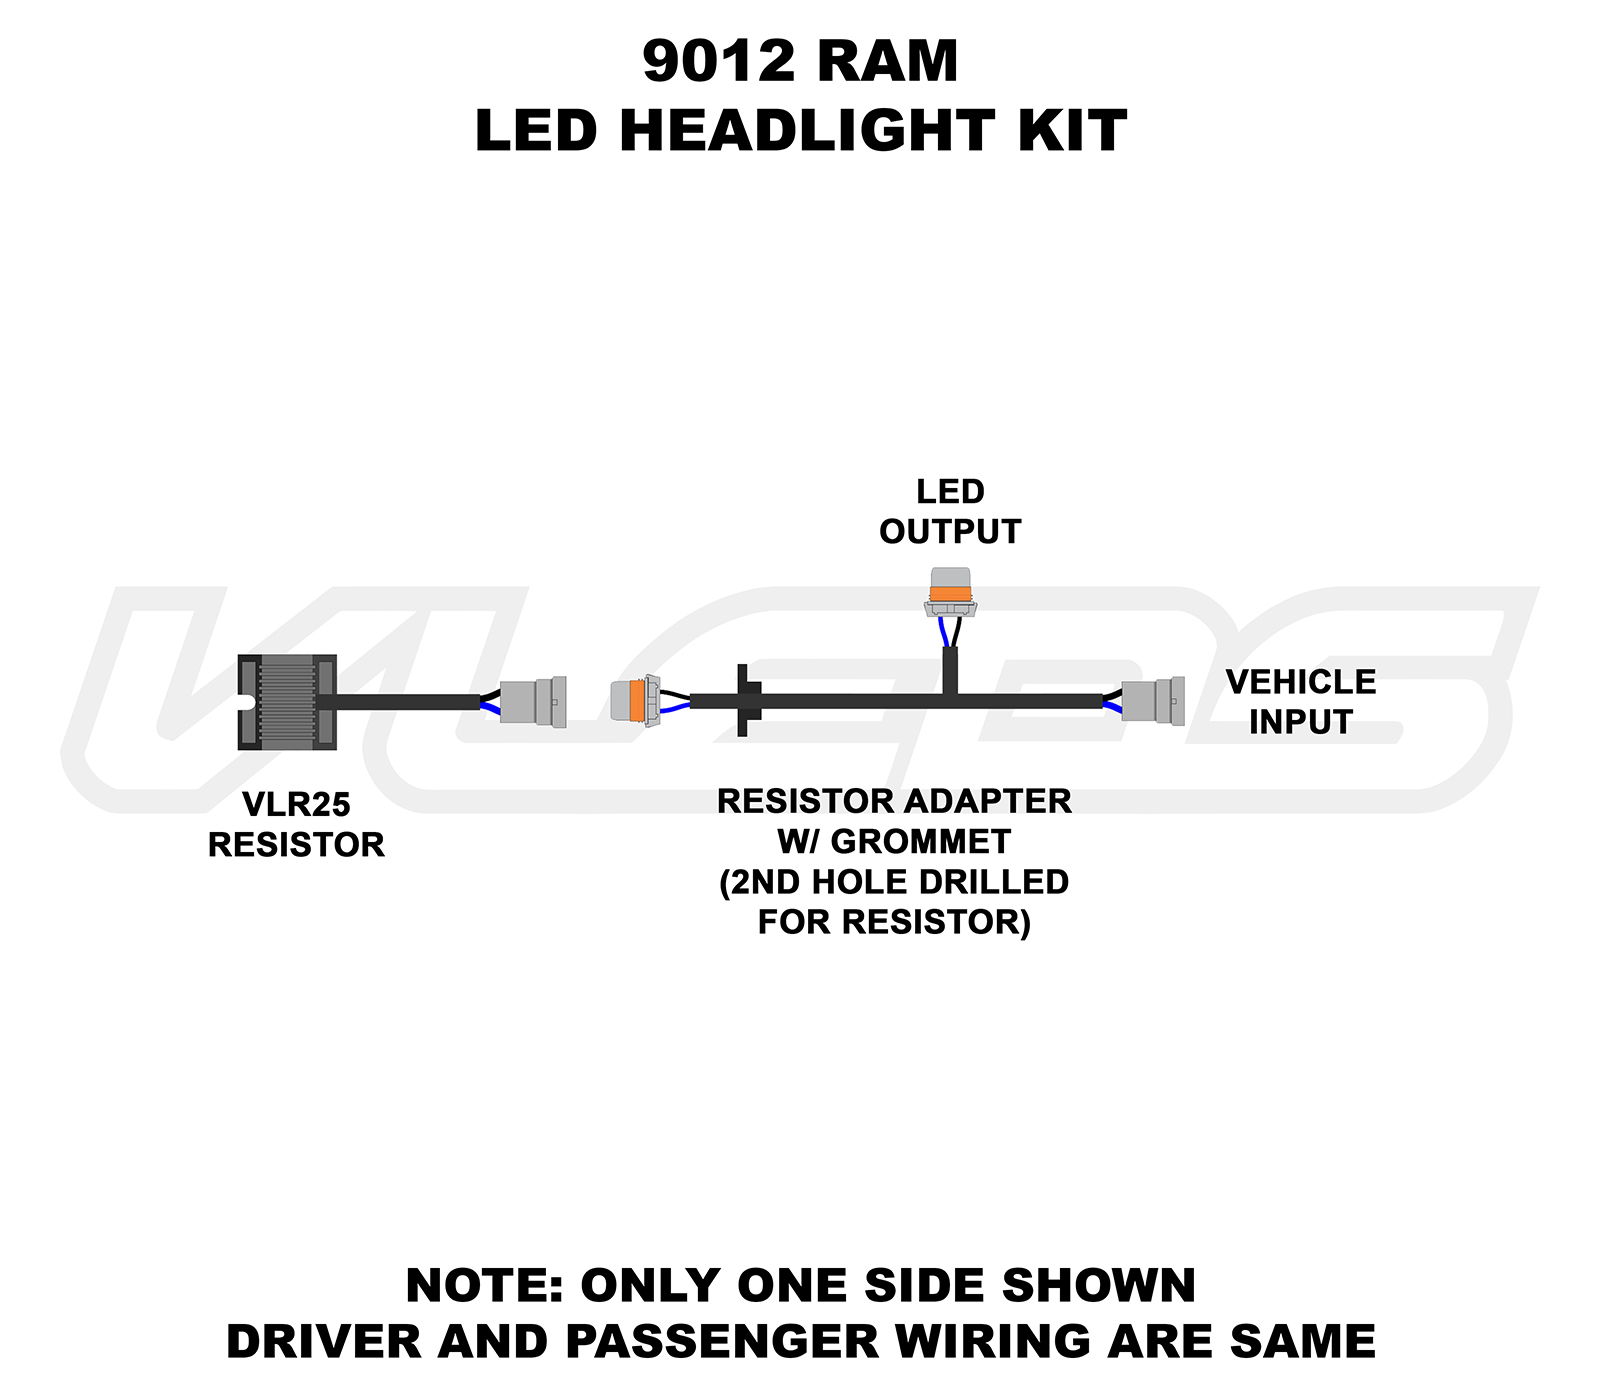 Wiring Diagrams 77 Dodge Truck Headlight Diagram 9012 Ram Led